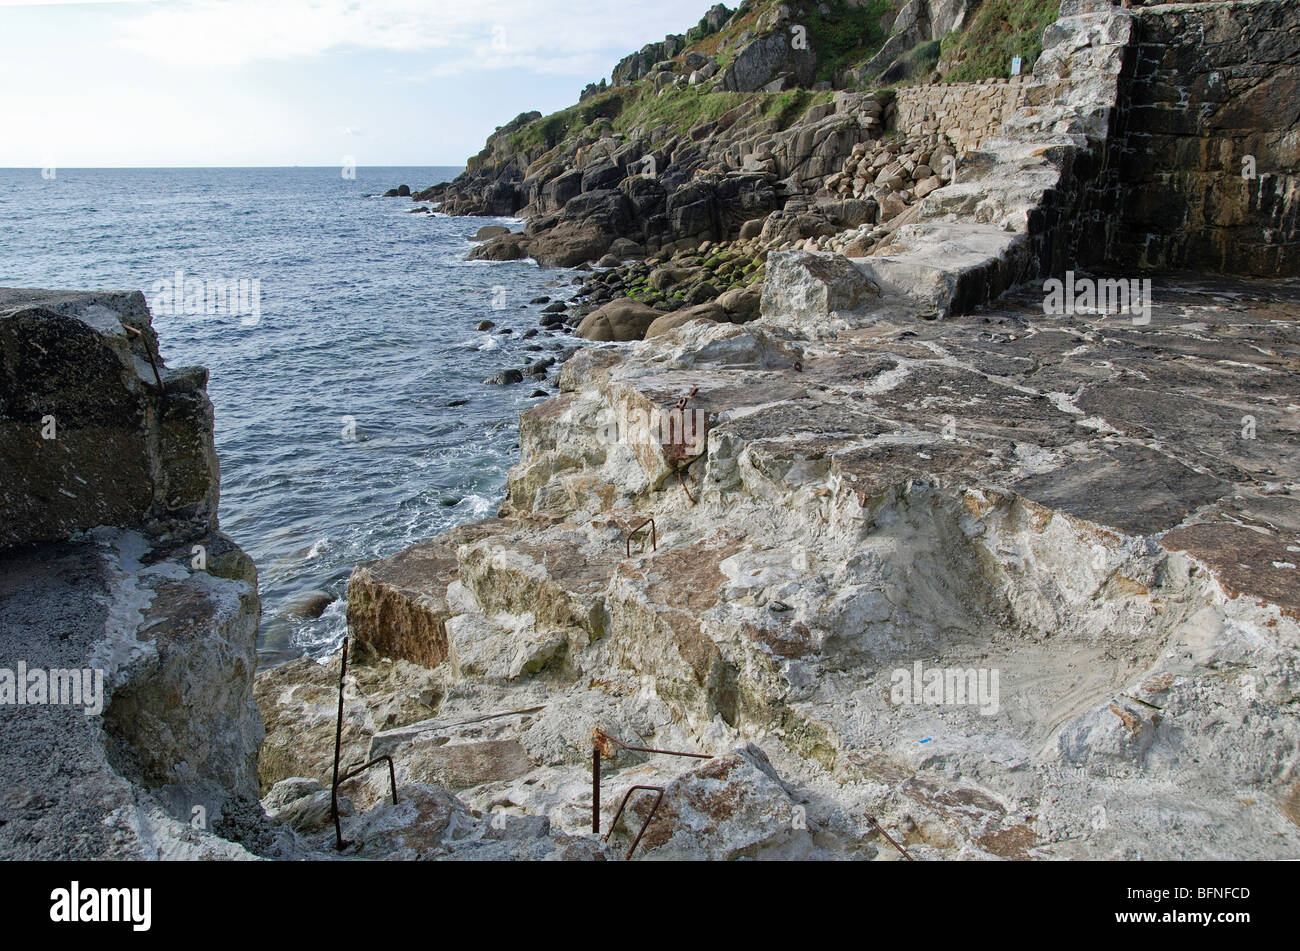 the damaged harbour  wall at lamorna cove in cornwall, uk ,  the damage has occured during recent high stormy seas - Stock Image